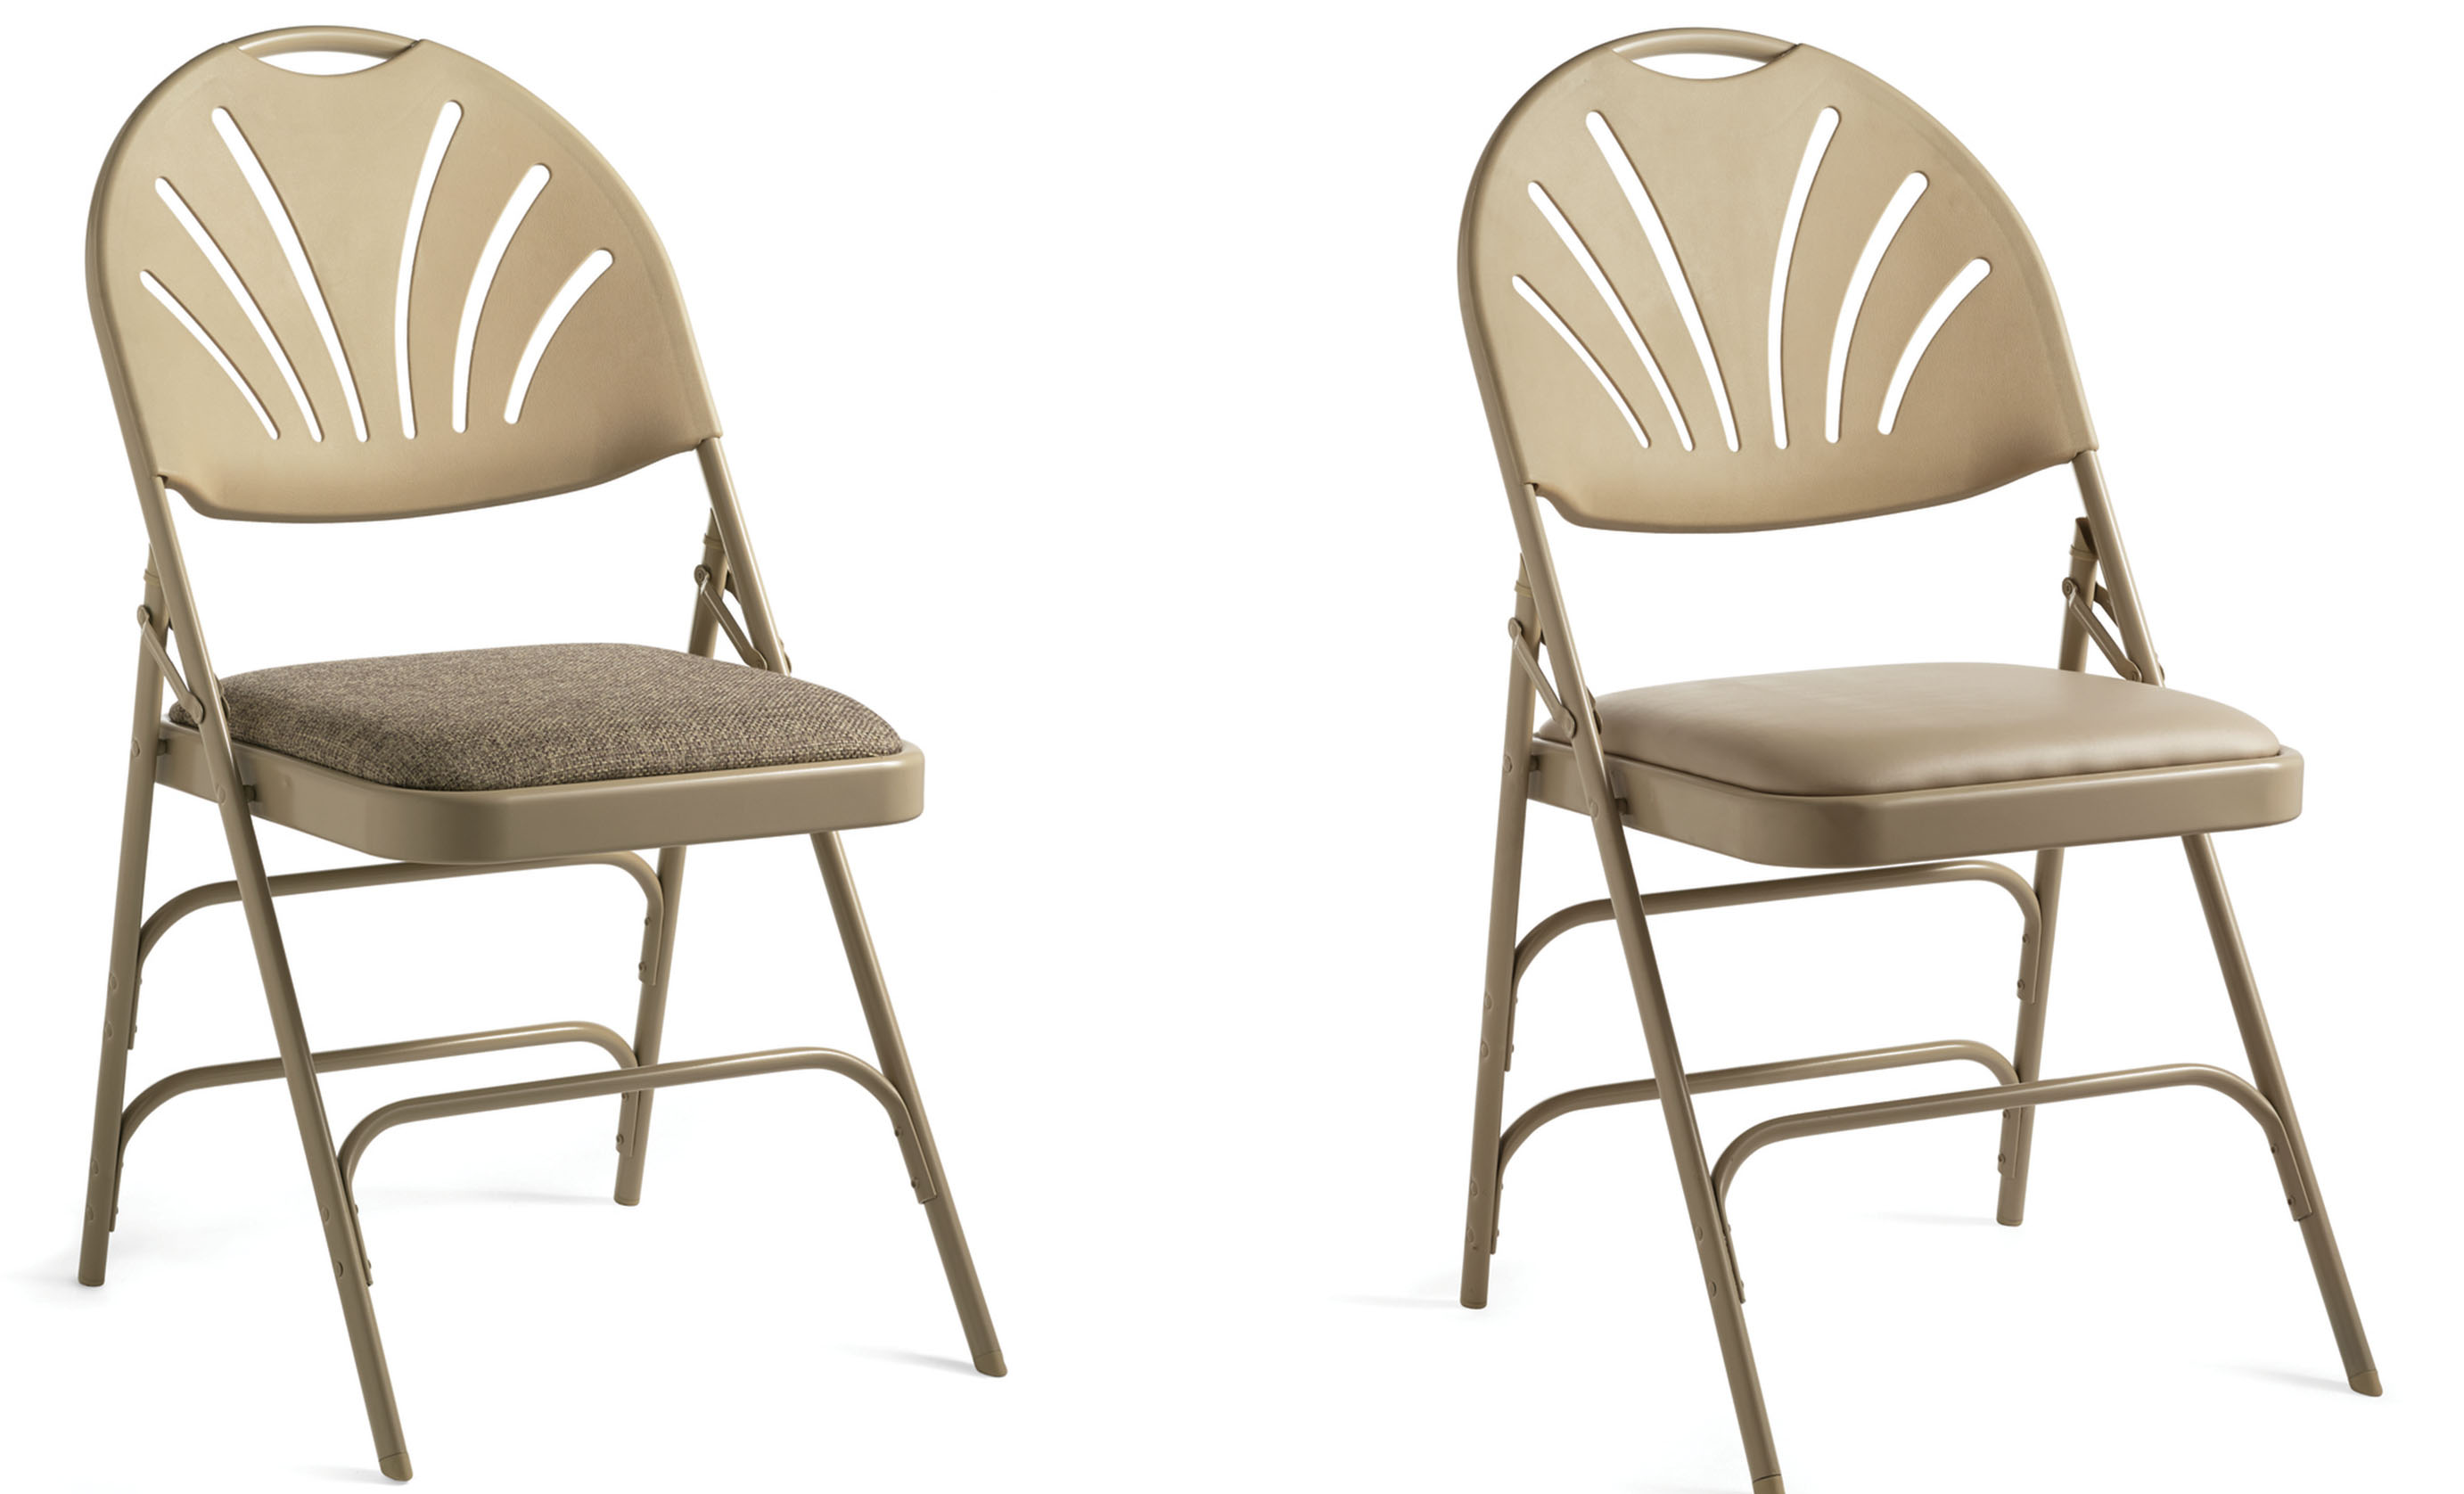 Folding Chairs That Make Great Gifts FoldingChairsandTables